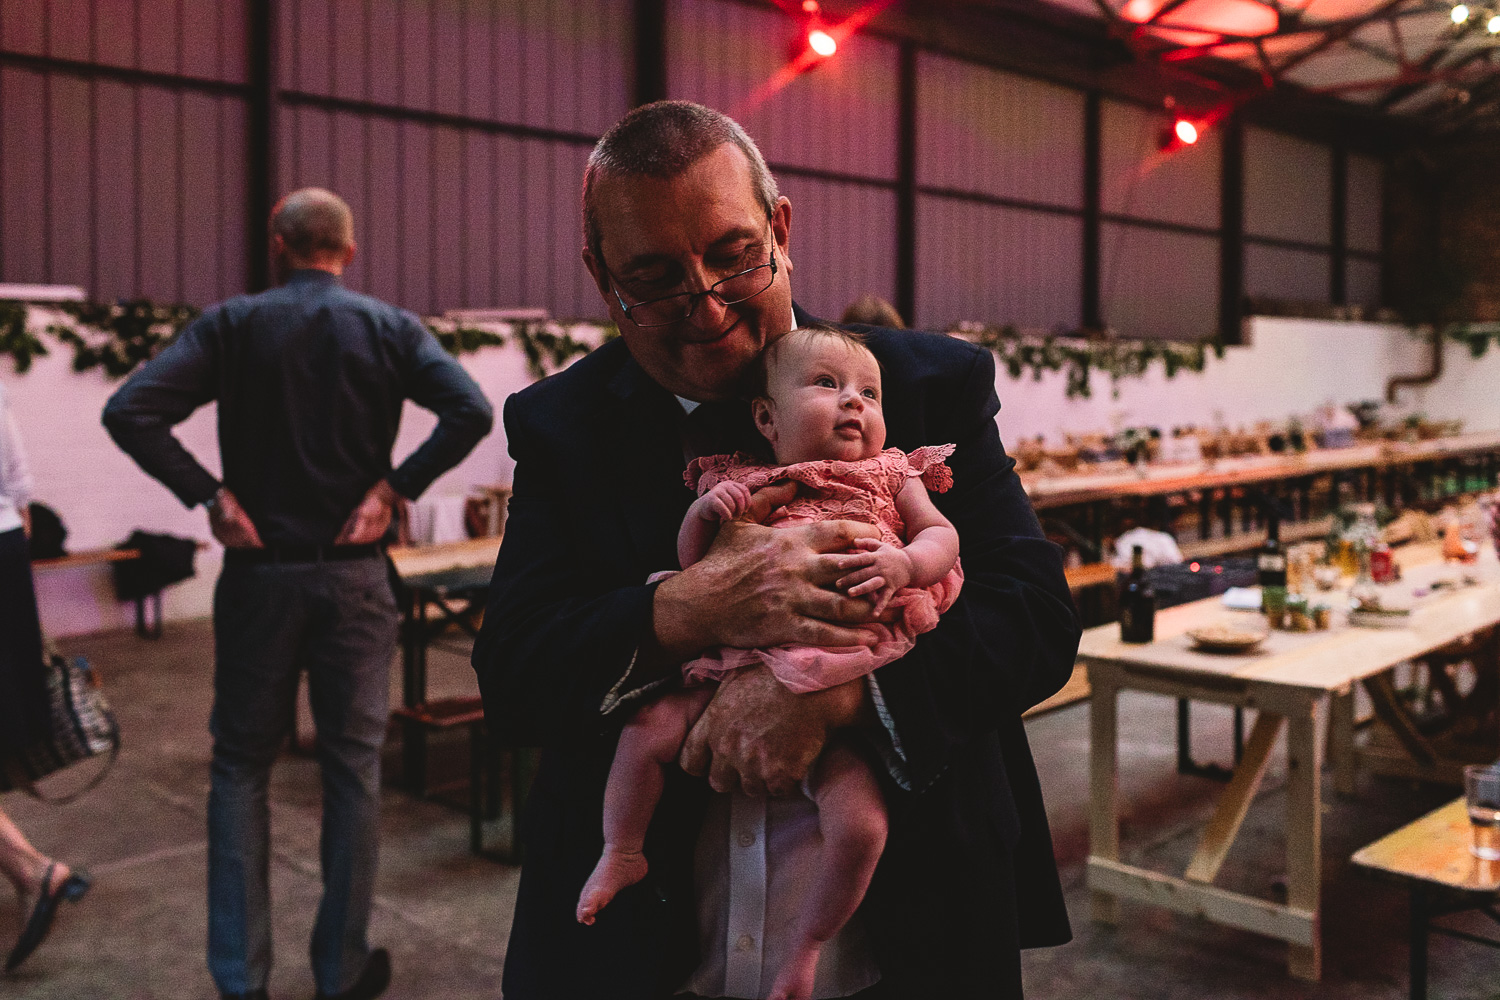 Man holding baby who is looking up at the colourful lighting in warehouse wedding venue 92 Burton Road in Sheffield